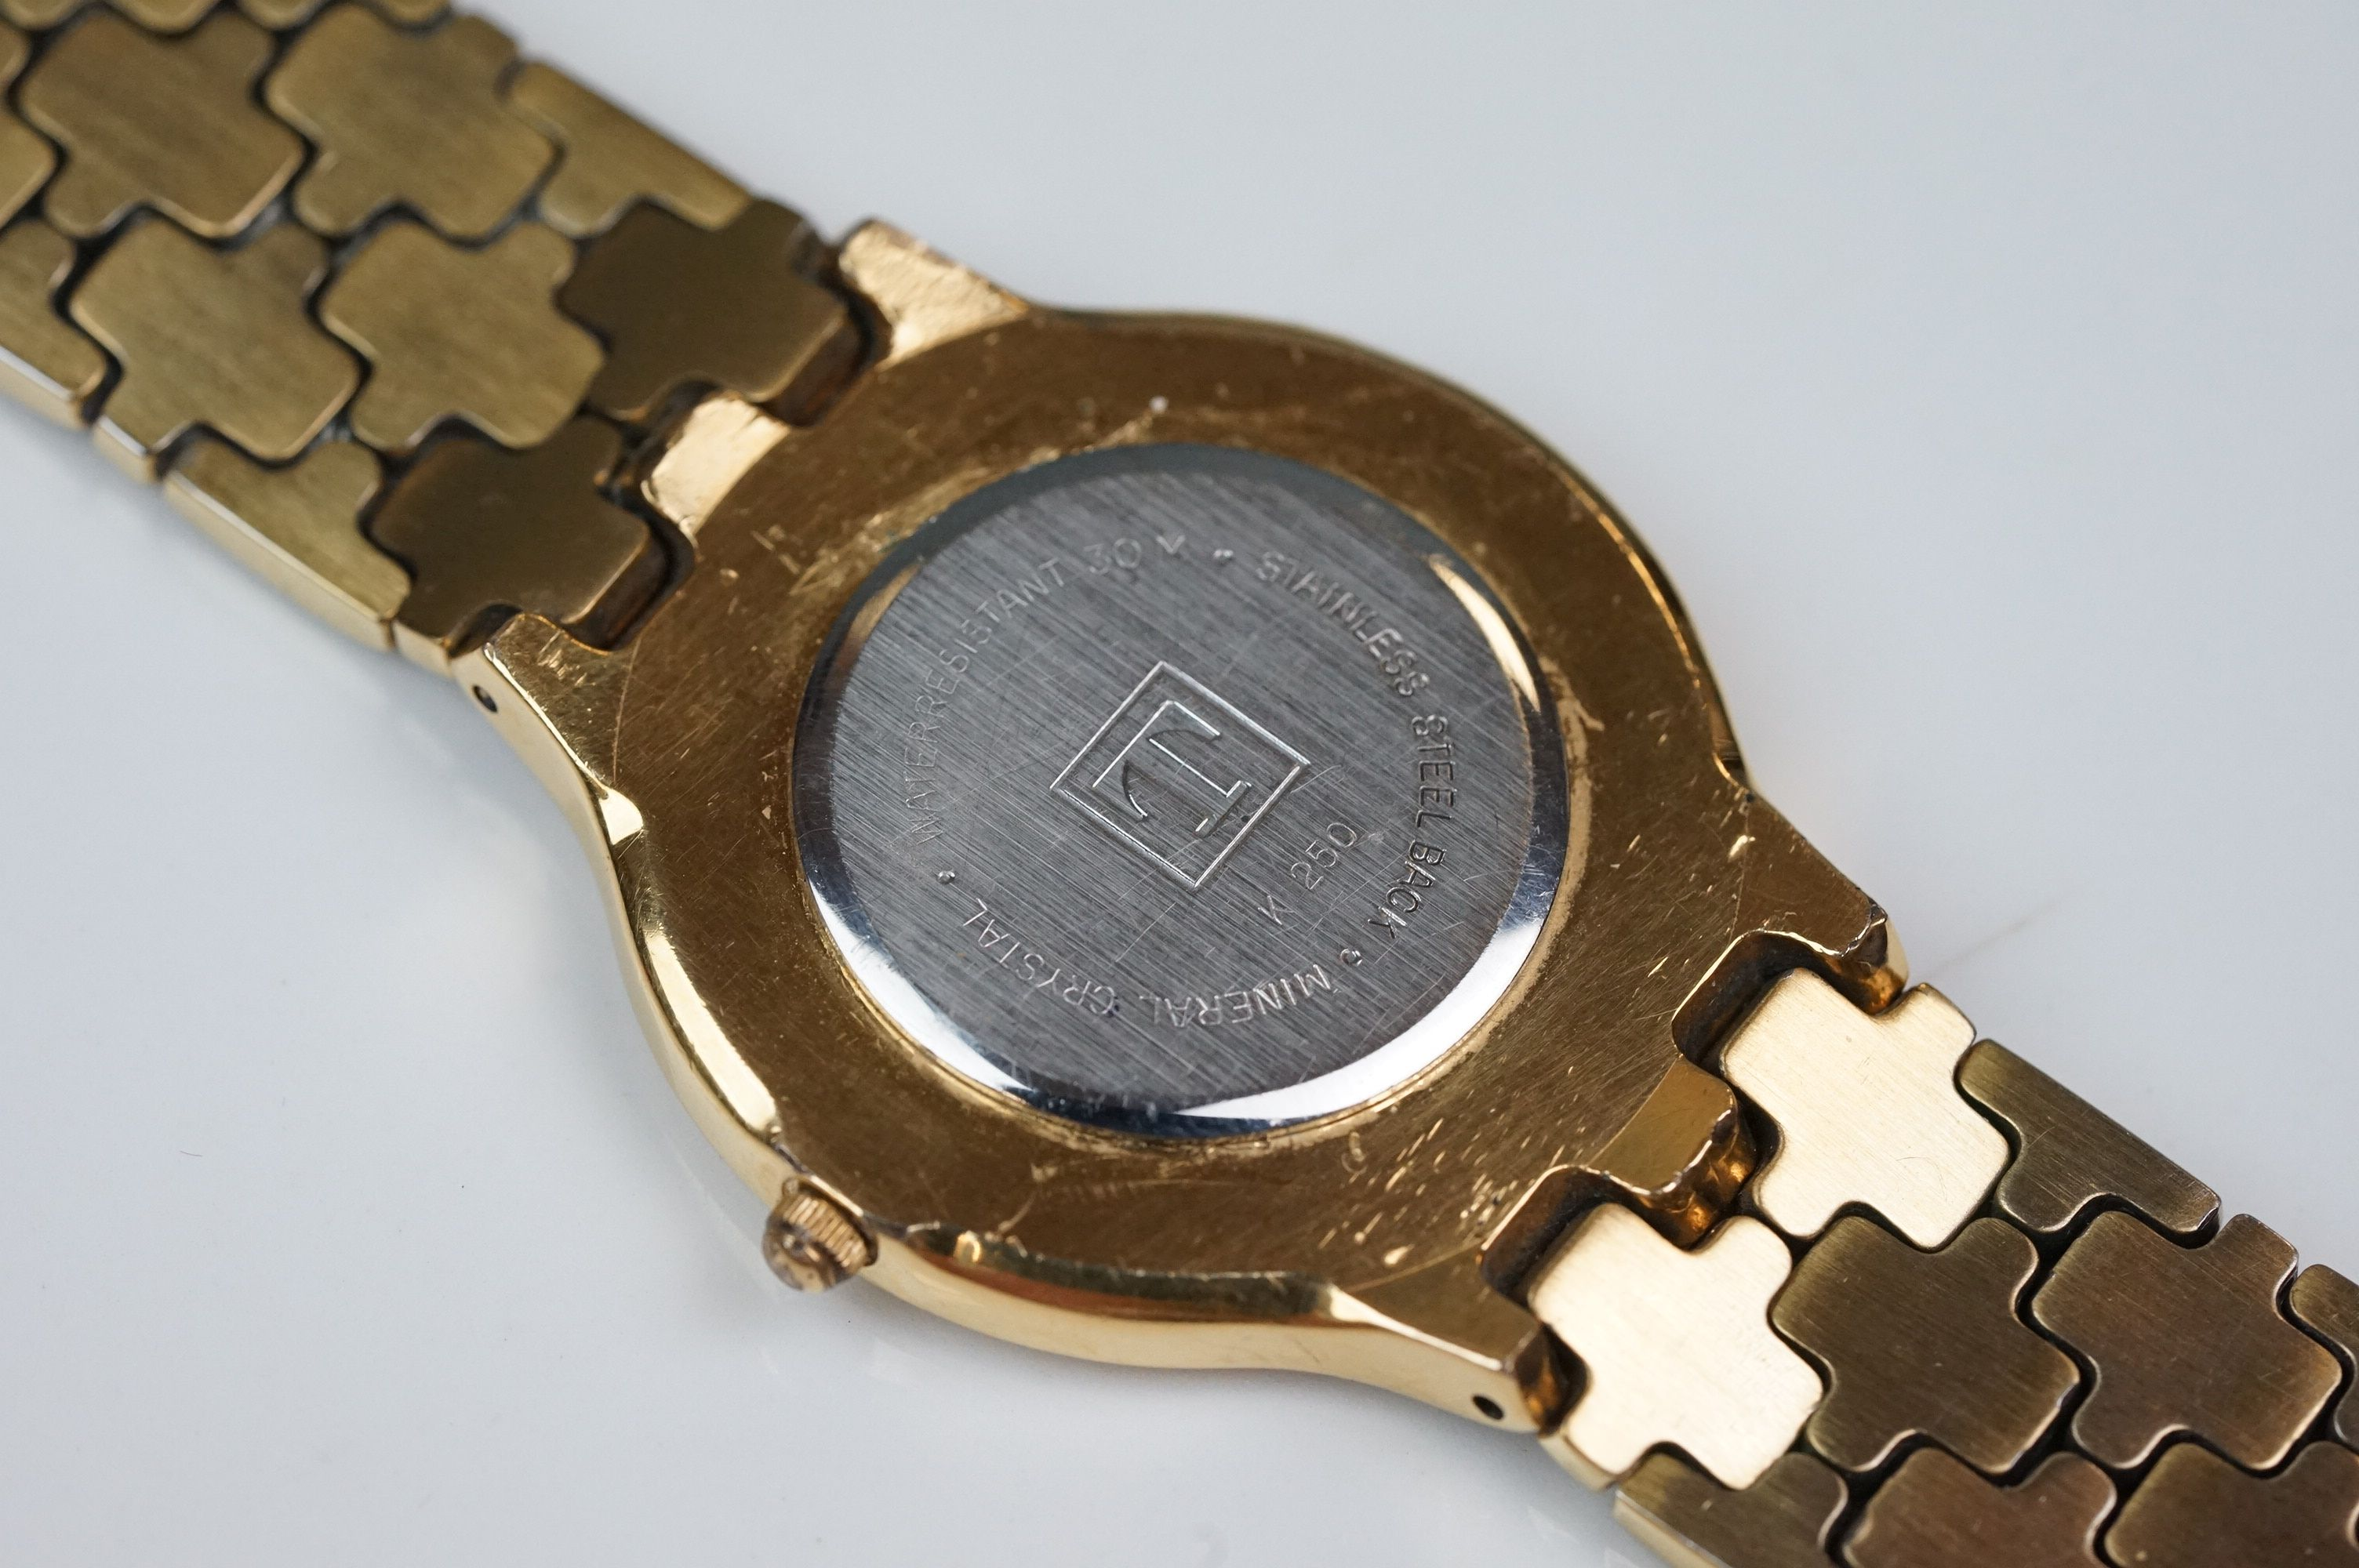 Tissot K250 gold plated dress watch - Image 6 of 10